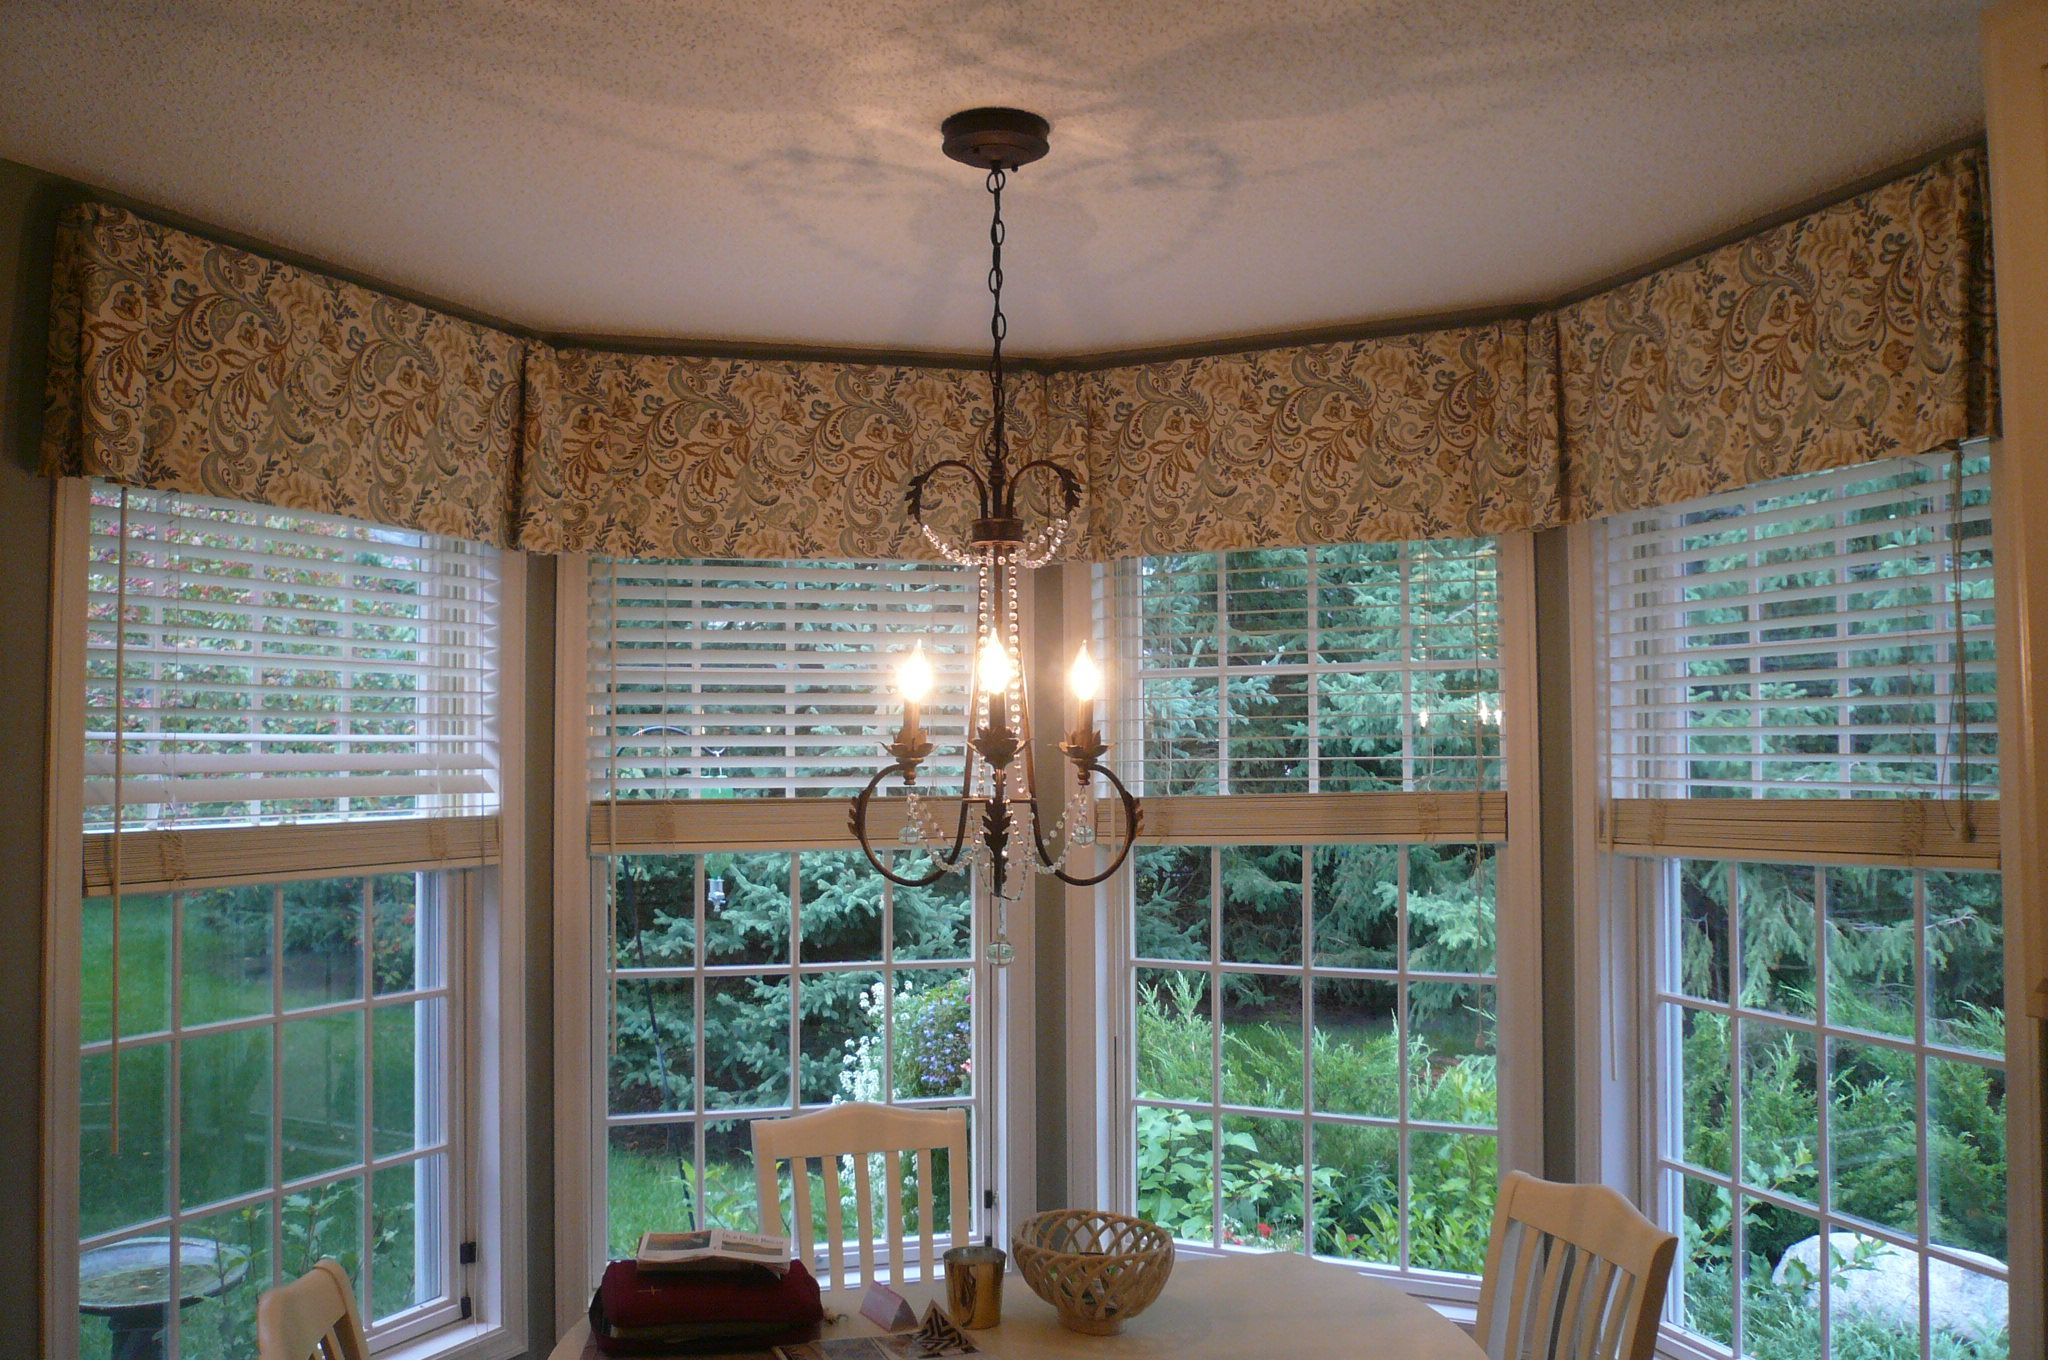 Bay window valance box pleated valance to tie 4 windows Window bay ideas